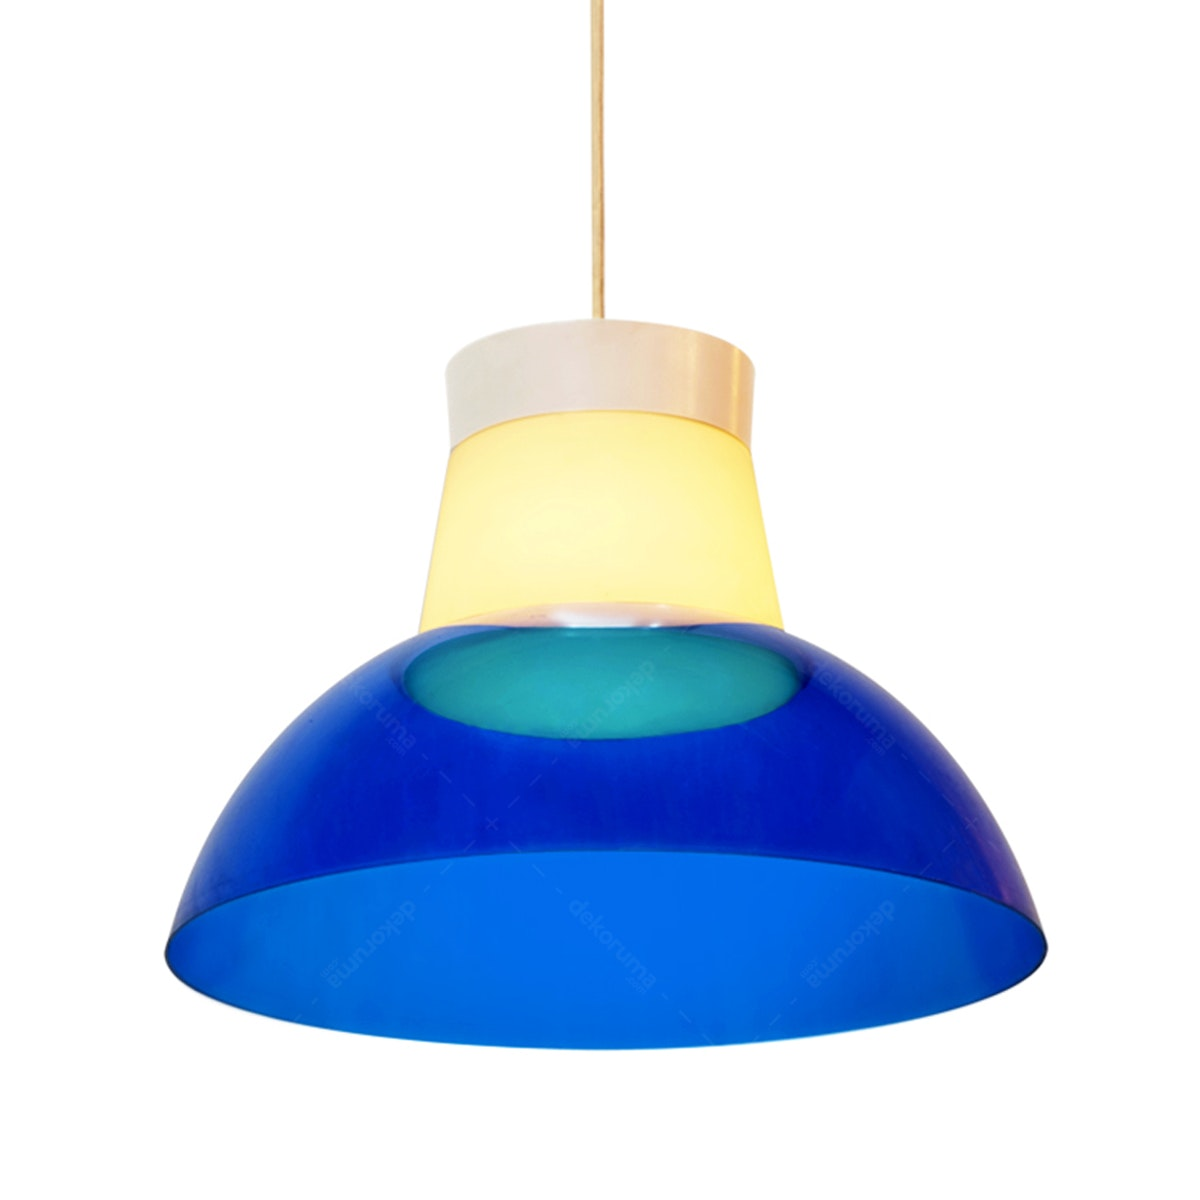 Lightology Chandelier / Lampu Gantung XD3200 BLUE